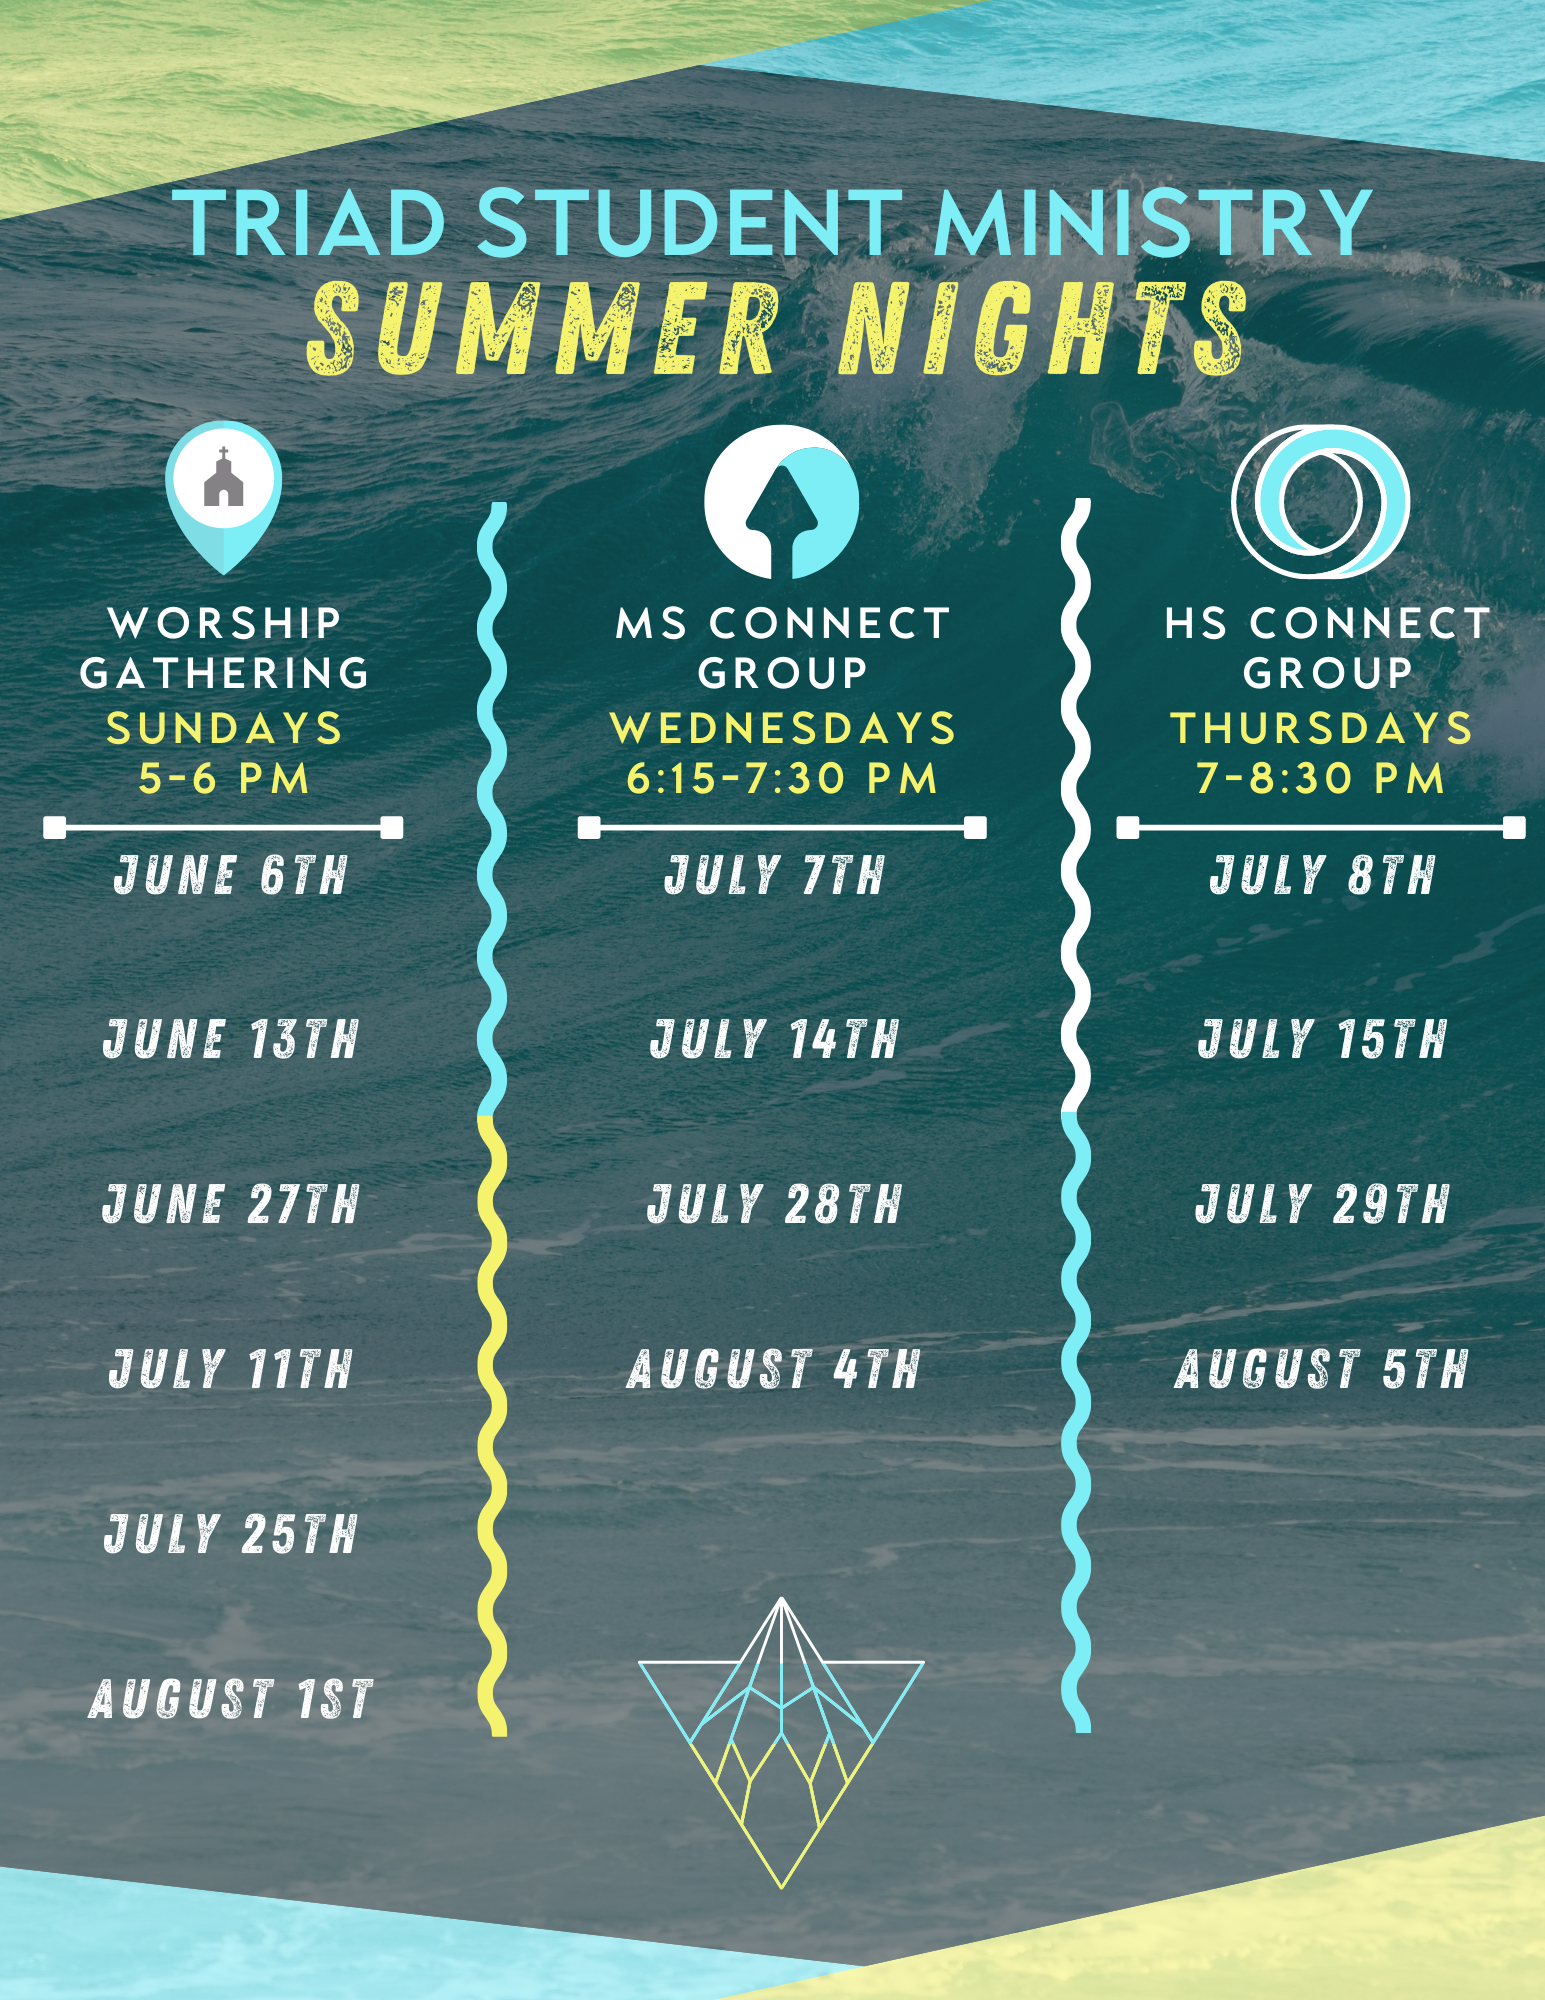 triad Student Ministry's Summer Nights